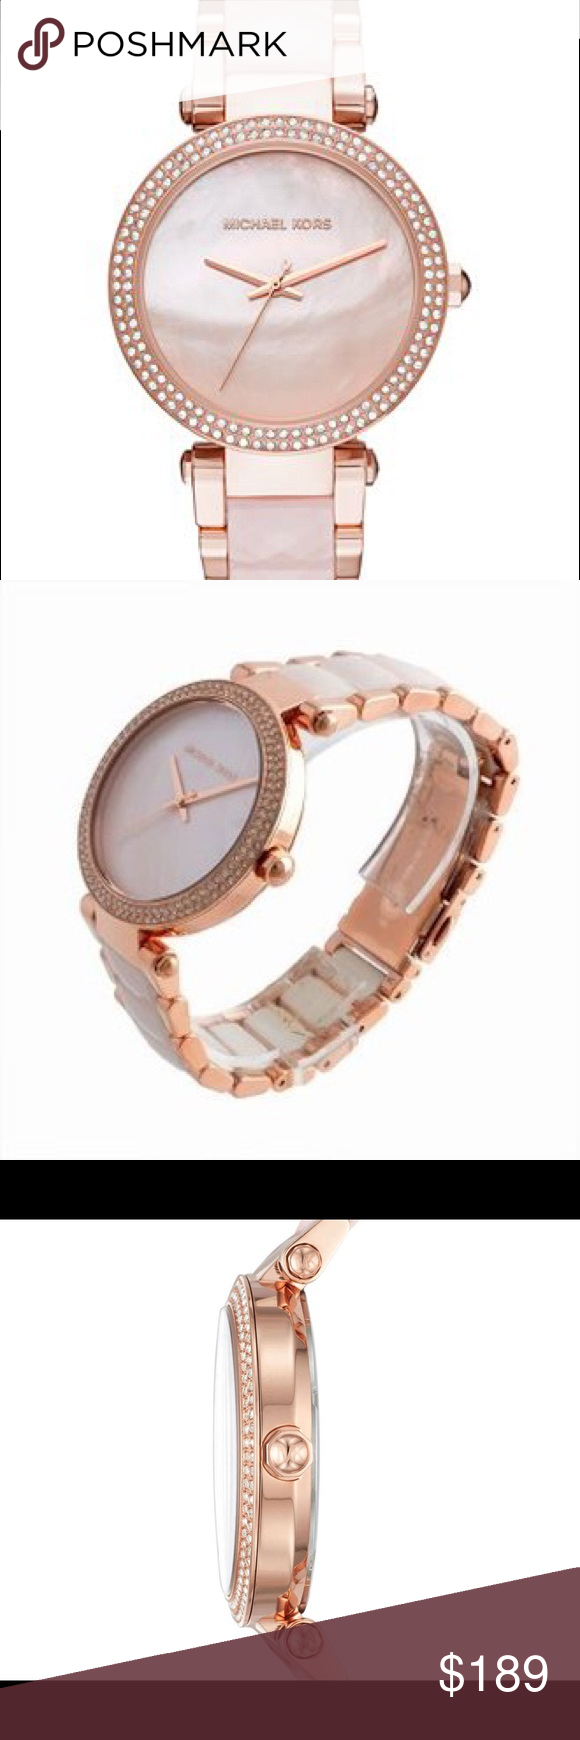 6feec98e3679 Michael Kors Women s Parker Rose Gold Watch Mk6402 Parker Rose Gold-Tone  and Blush Acetate